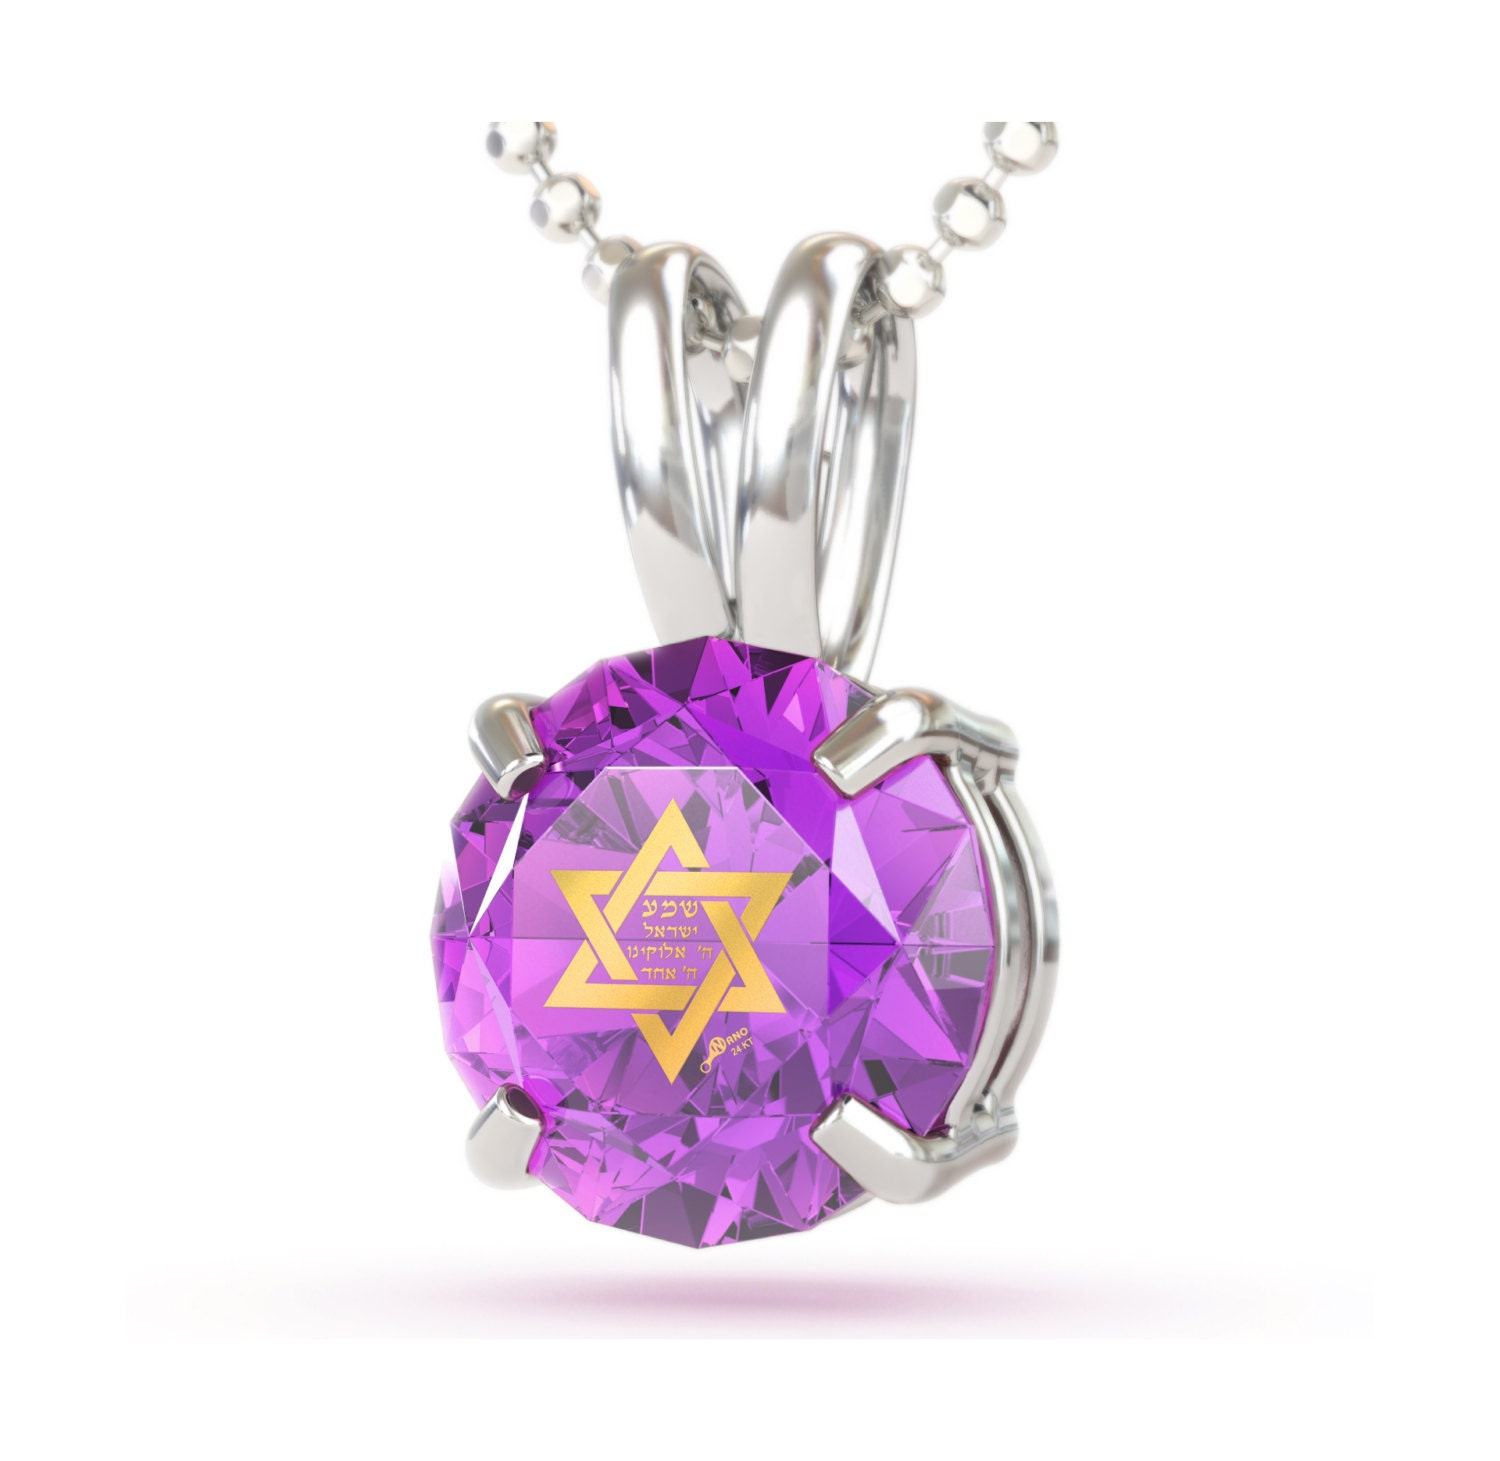 Shema Yisrael Pendant - Star of David Necklace Inscribed 24kt Gold on Cubic Zirconia - Jewish Jewelry - Religious Gifts from Israel